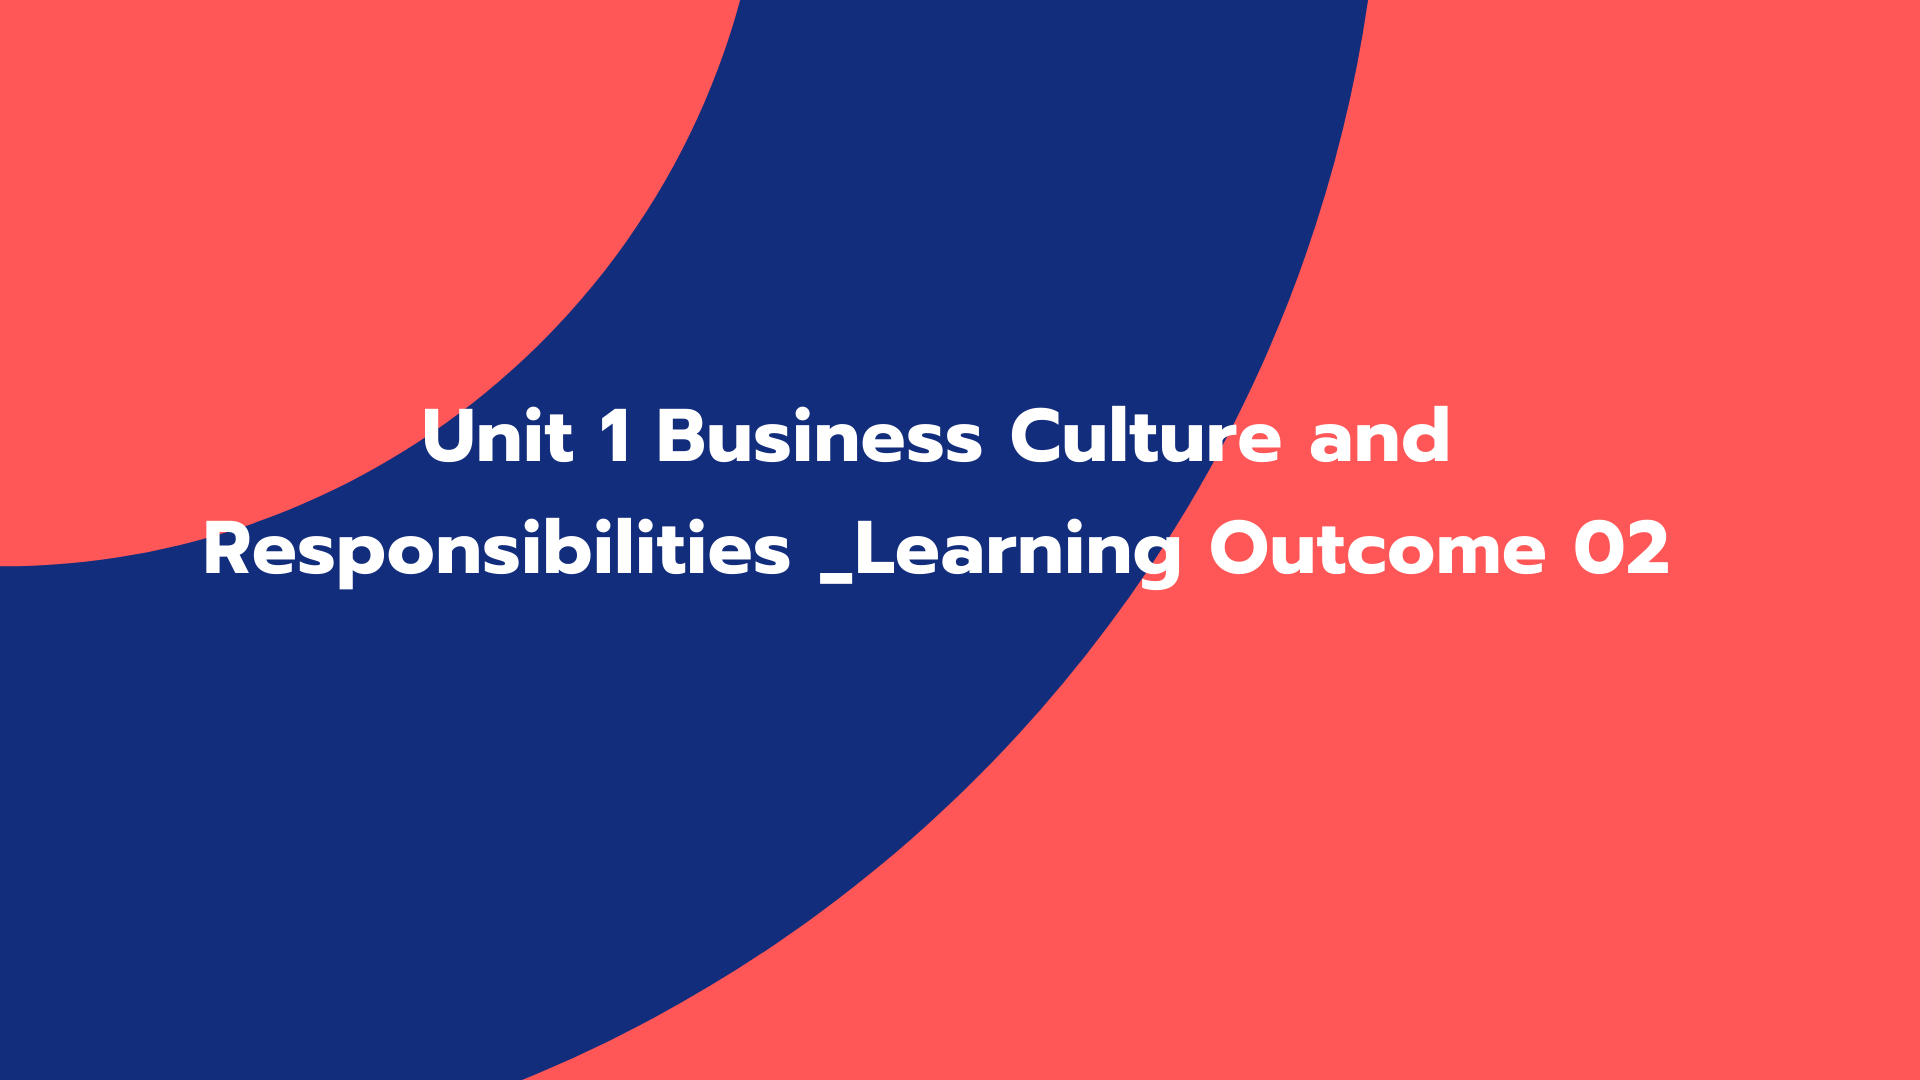 Unit 1 Business Culture and Responsibilities _Learning Outcome 02